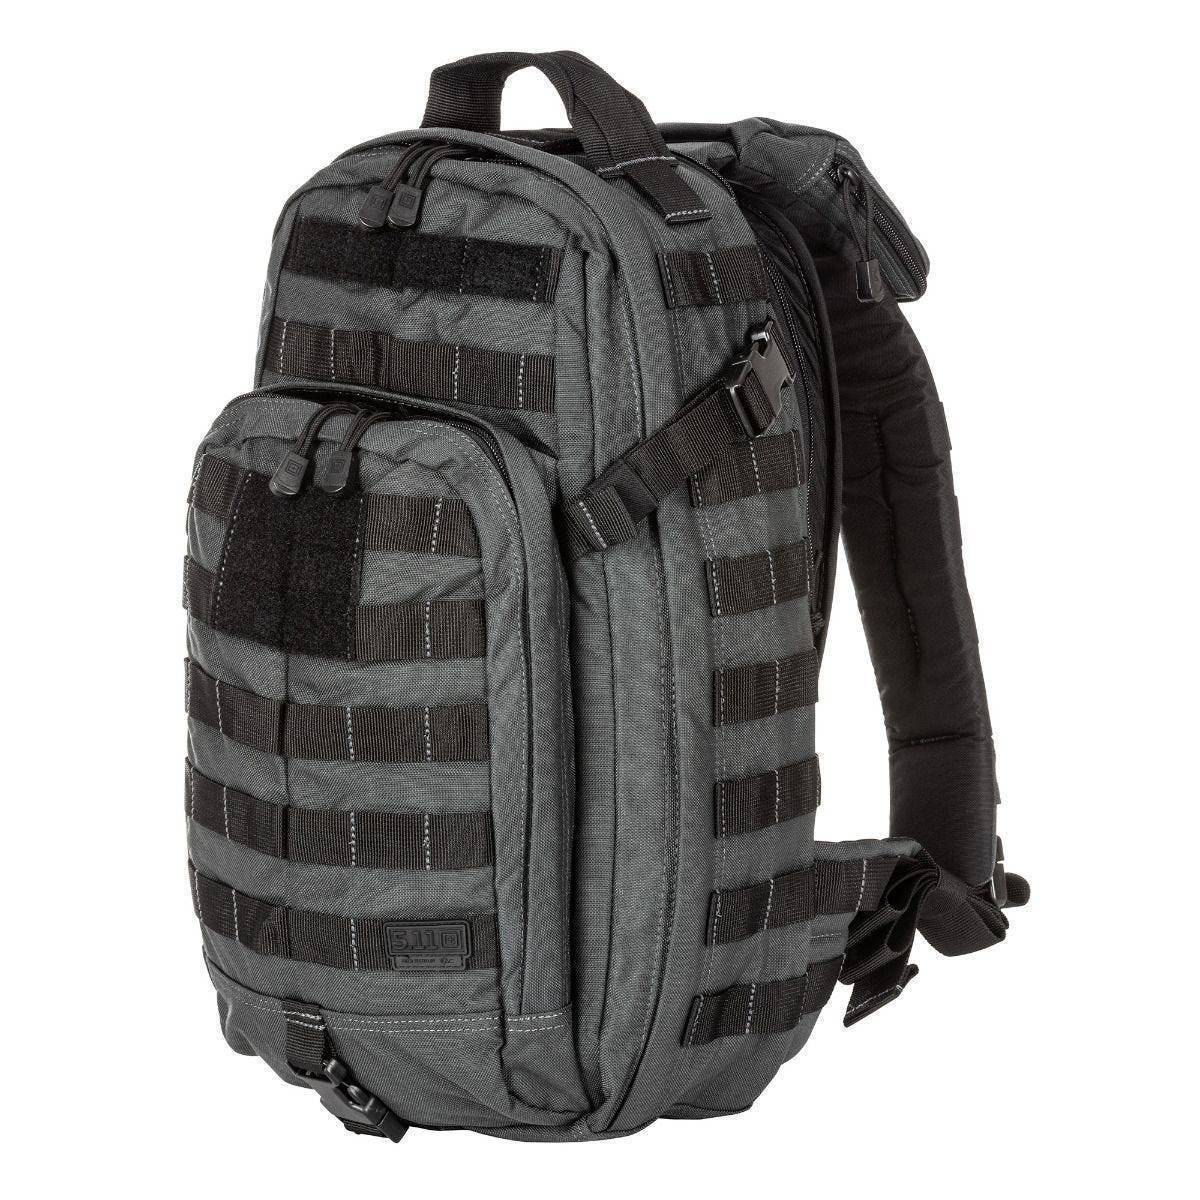 5.11 Tactical Rush MOAB 10 Double Tap